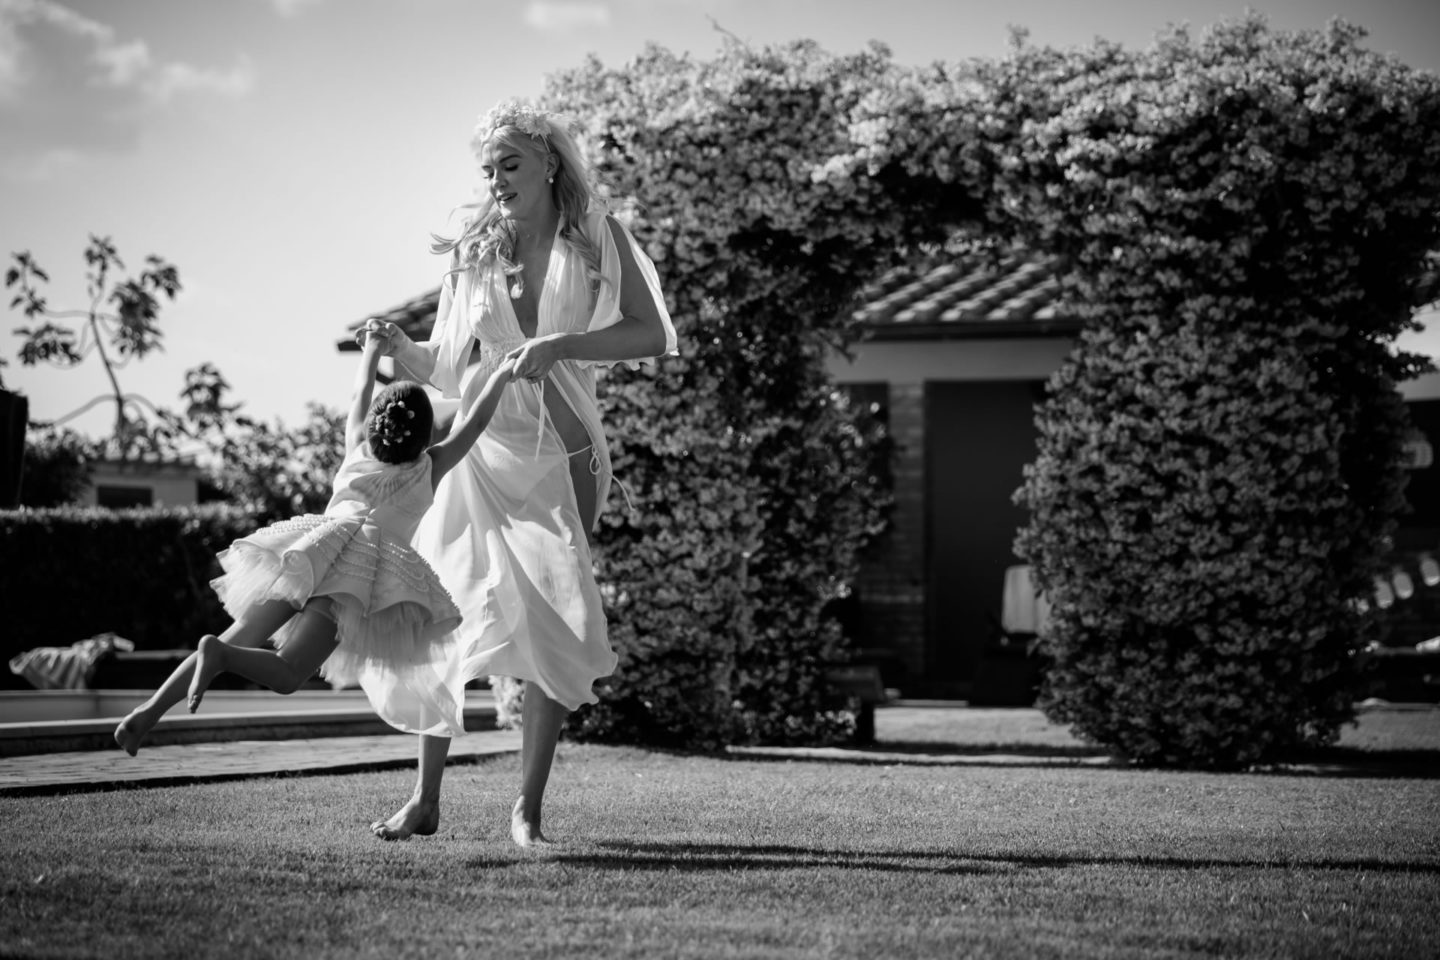 Fly :: Exciting wedding in the countryside of Siena :: Luxury wedding photography - 21 :: Fly